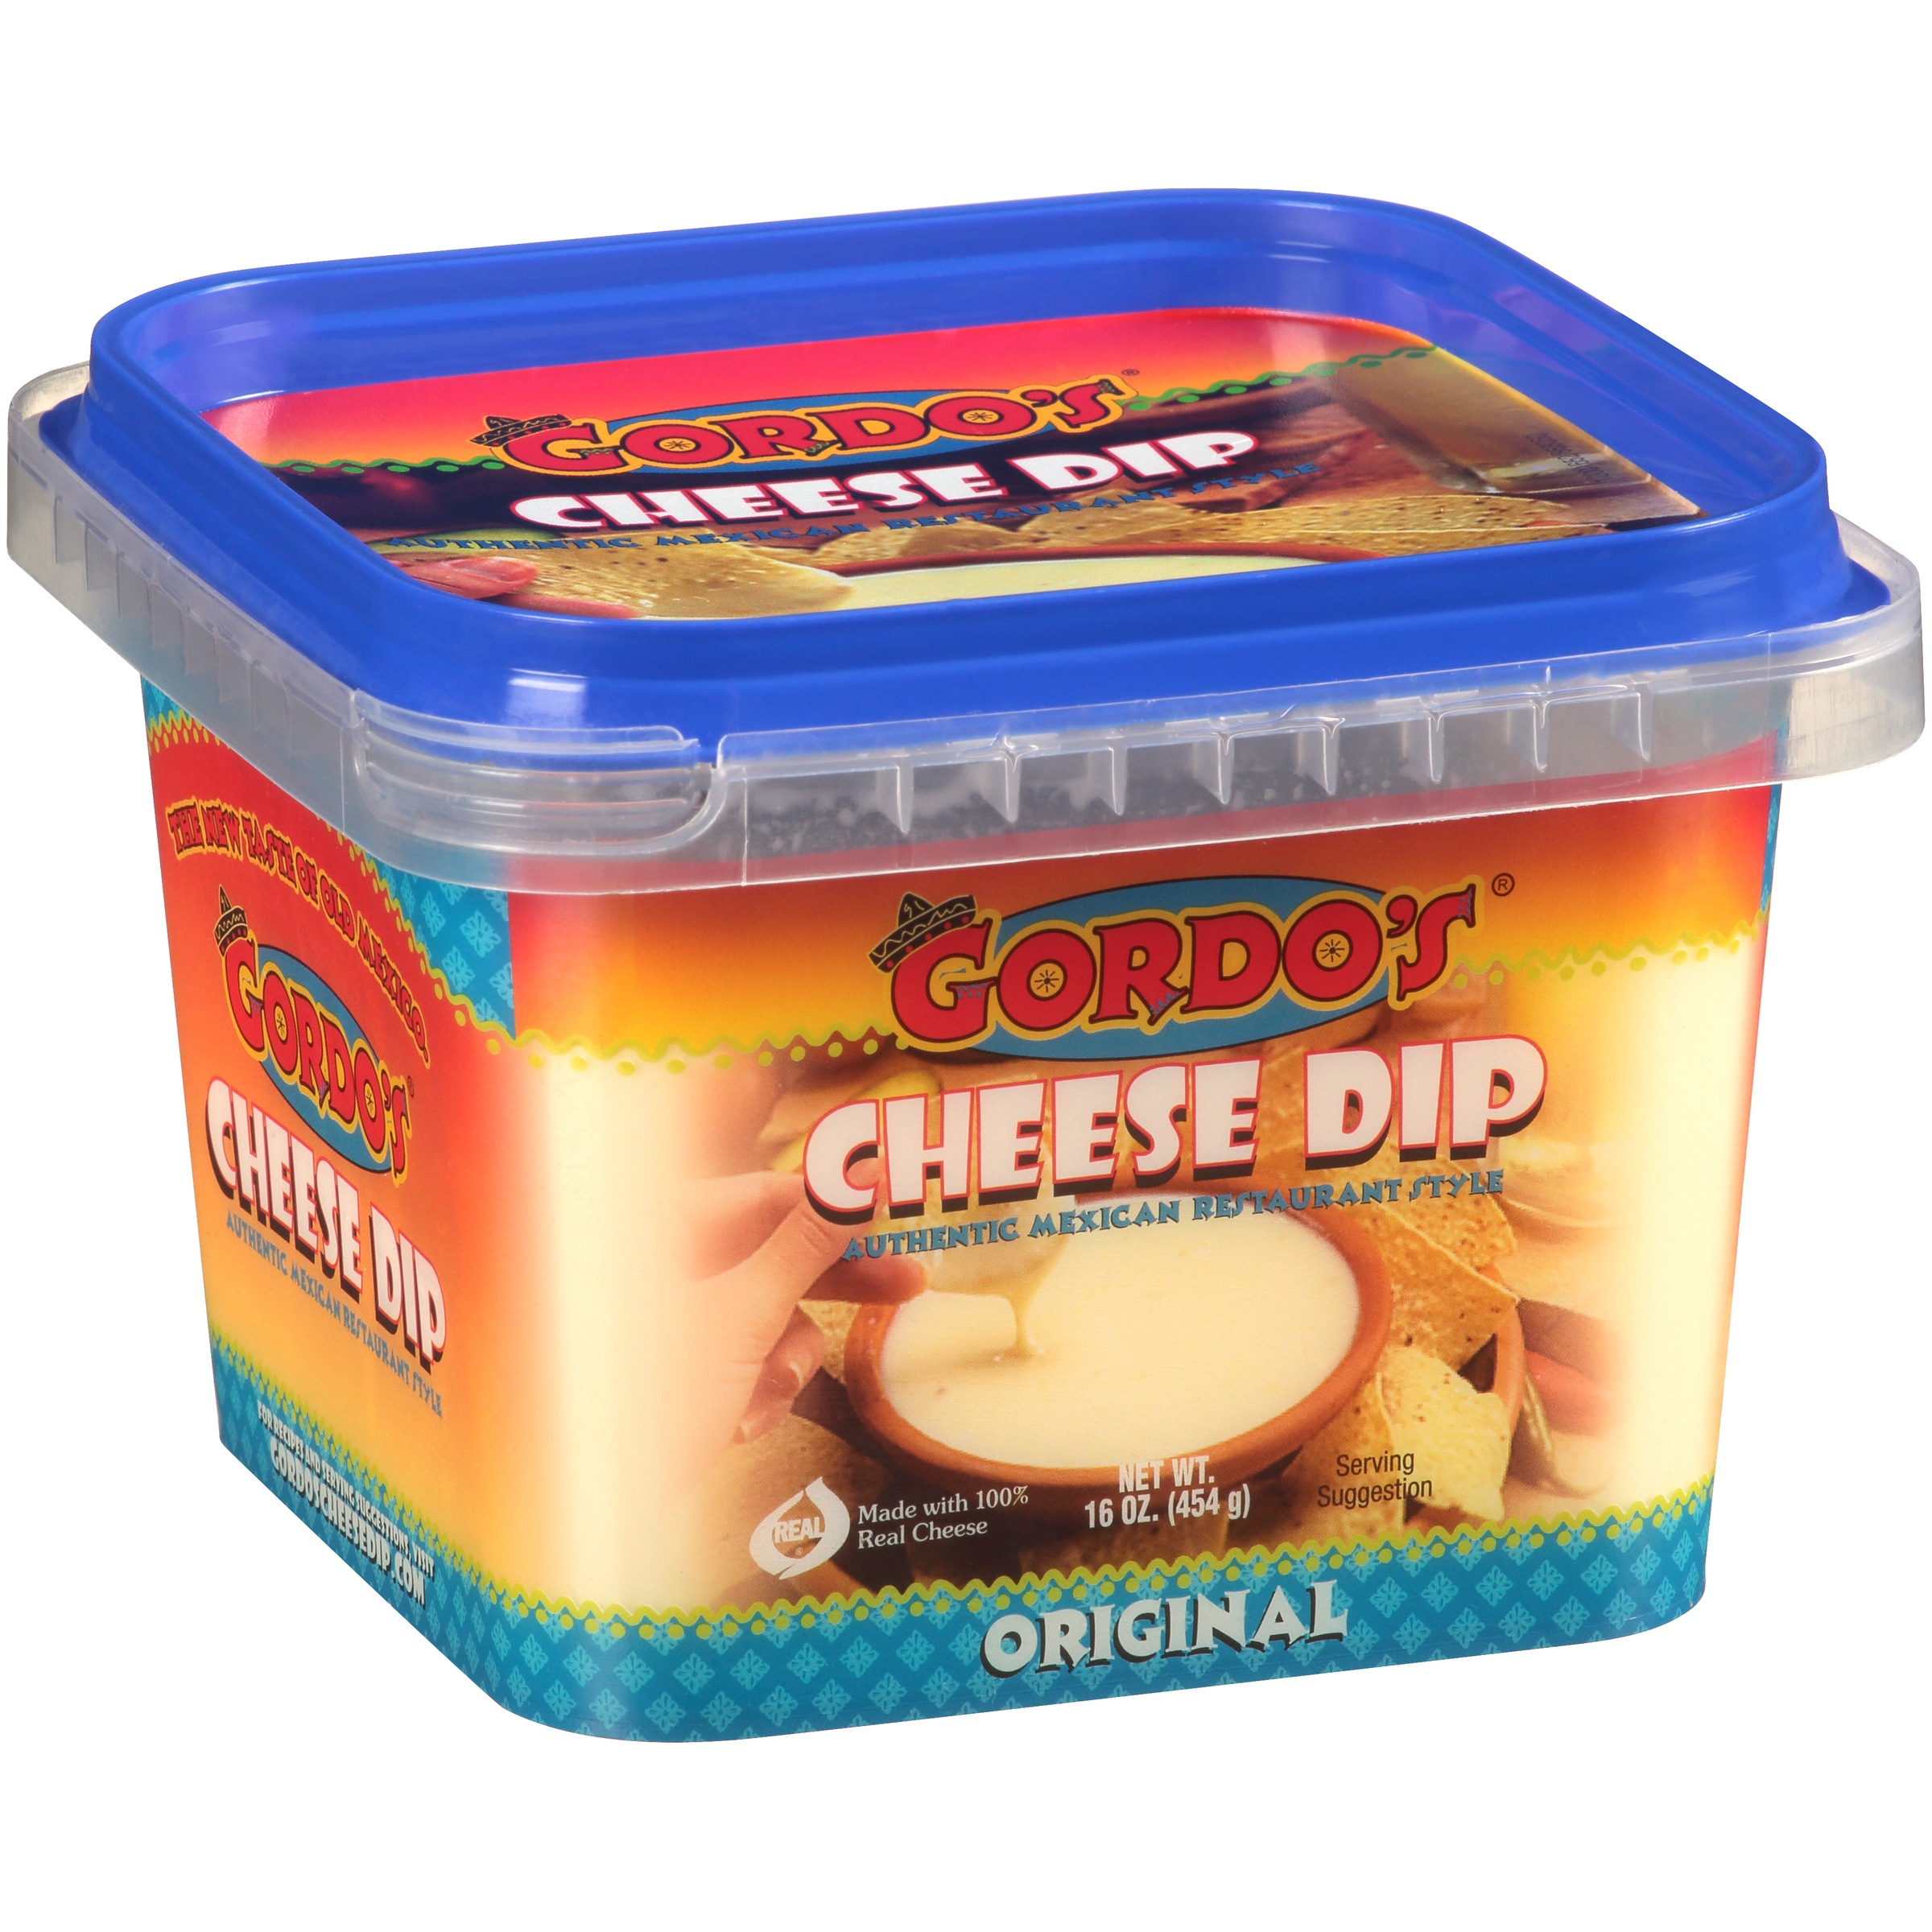 Gordo's® Original Cheese Dip 16 oz. Tub